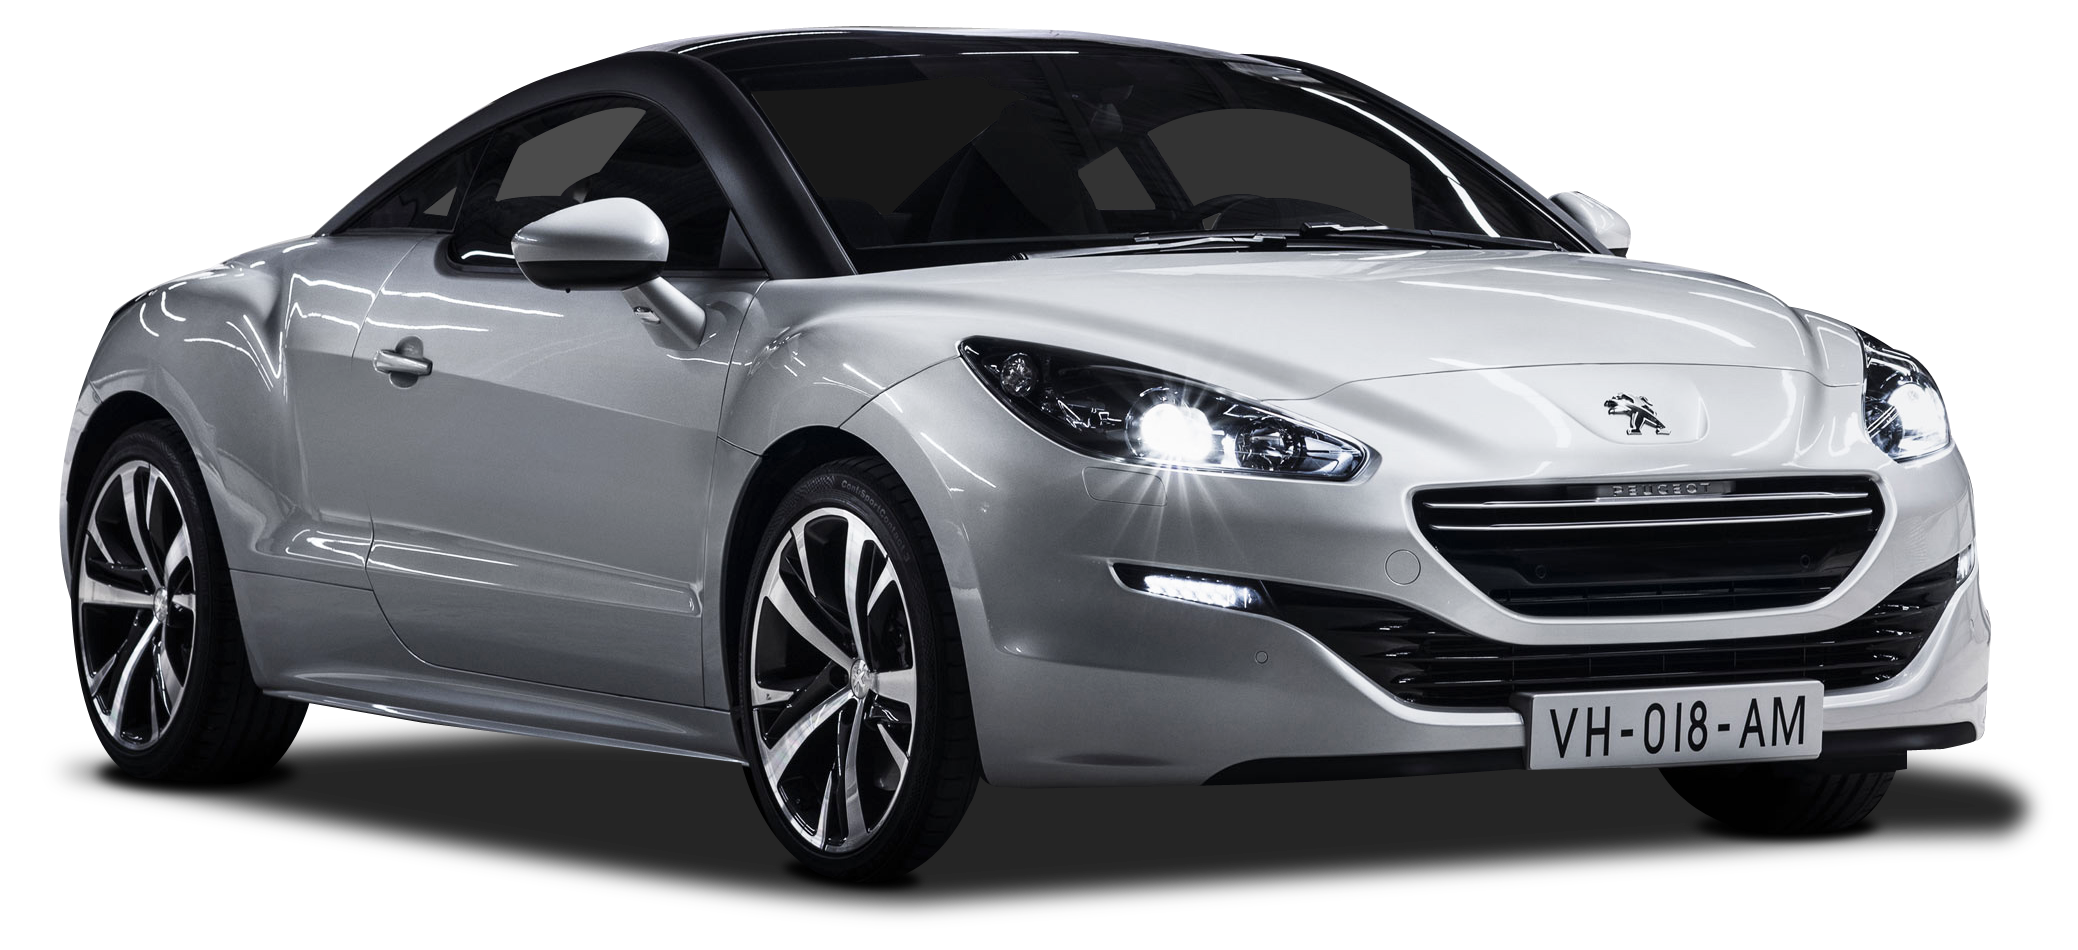 French car clipart vector royalty free library Peugeot PNG Image - PurePNG | Free transparent CC0 PNG Image Library vector royalty free library